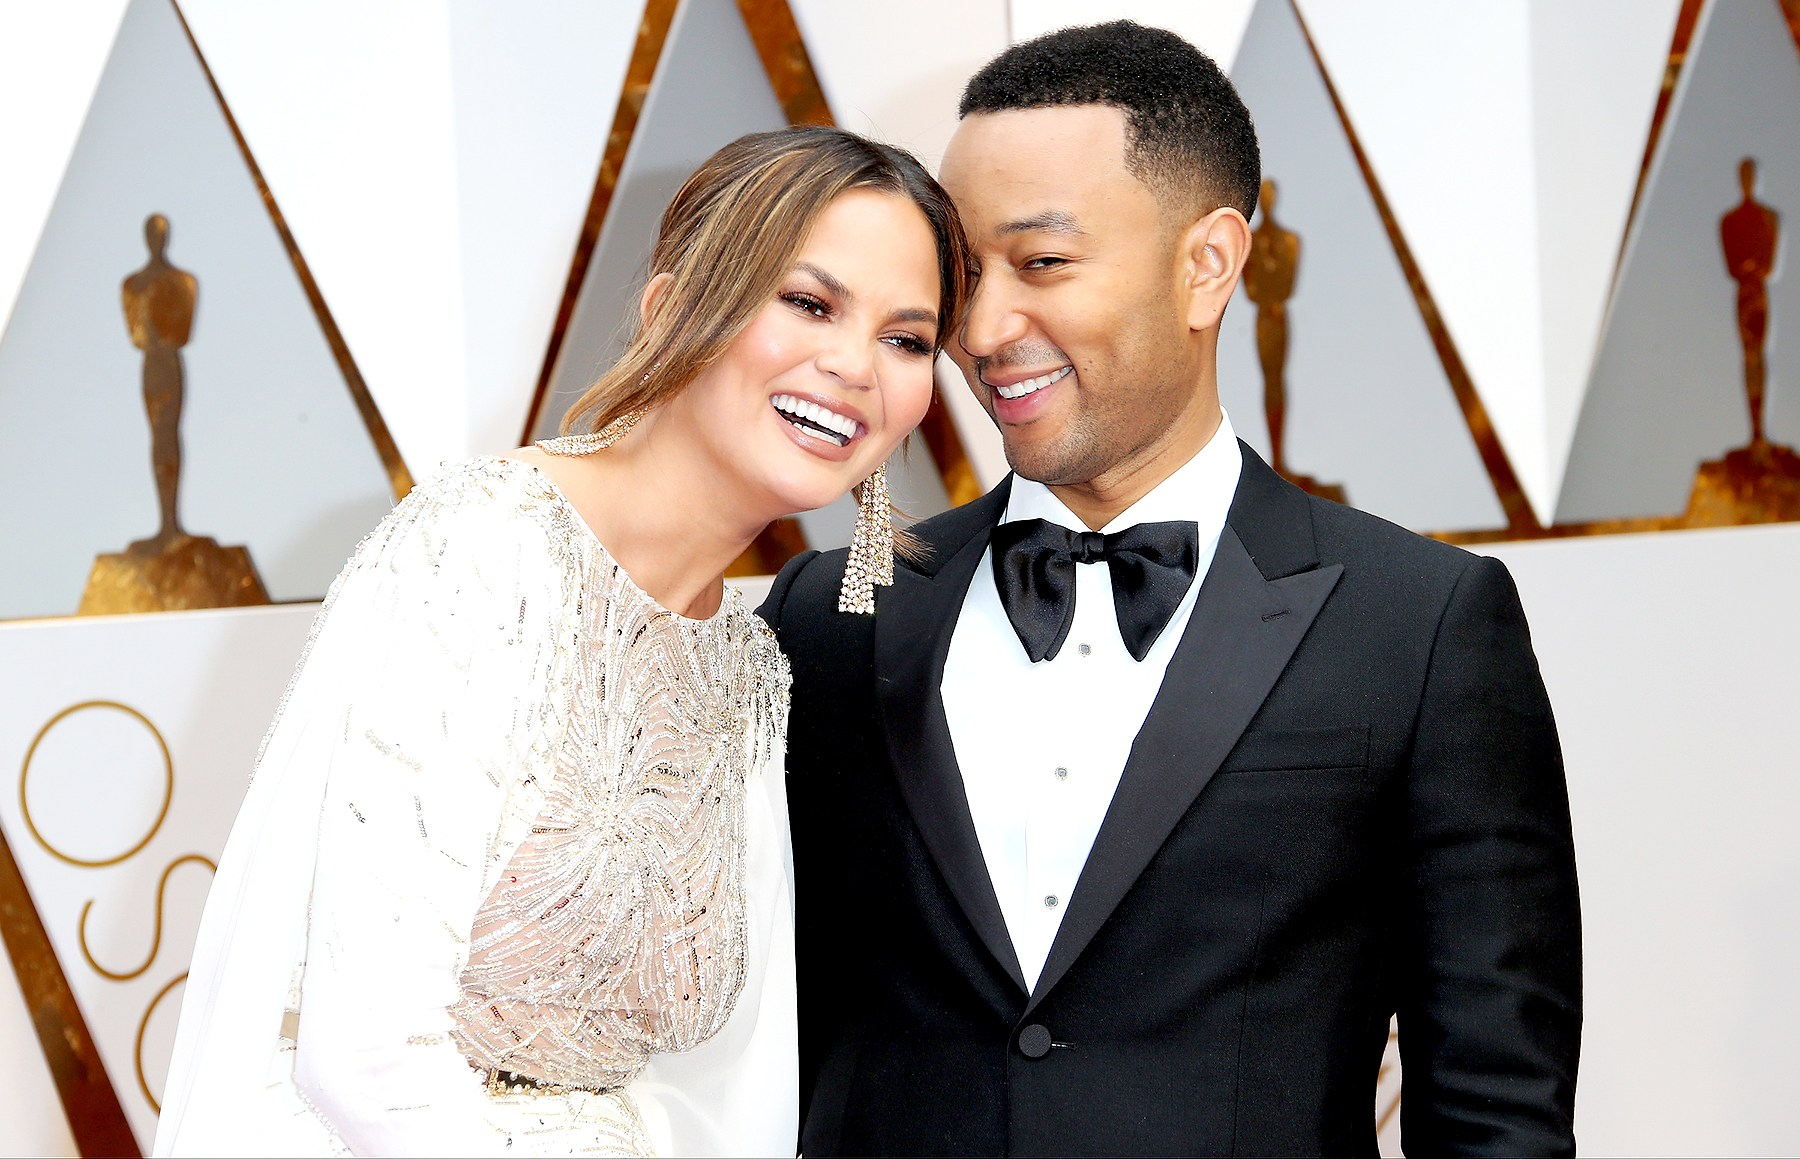 Chrissy Teigen and John Legend arrive at the 89th Annual Academy Awards at Hollywood  Highland Center on February 26, 2017 in Hollywood, California.